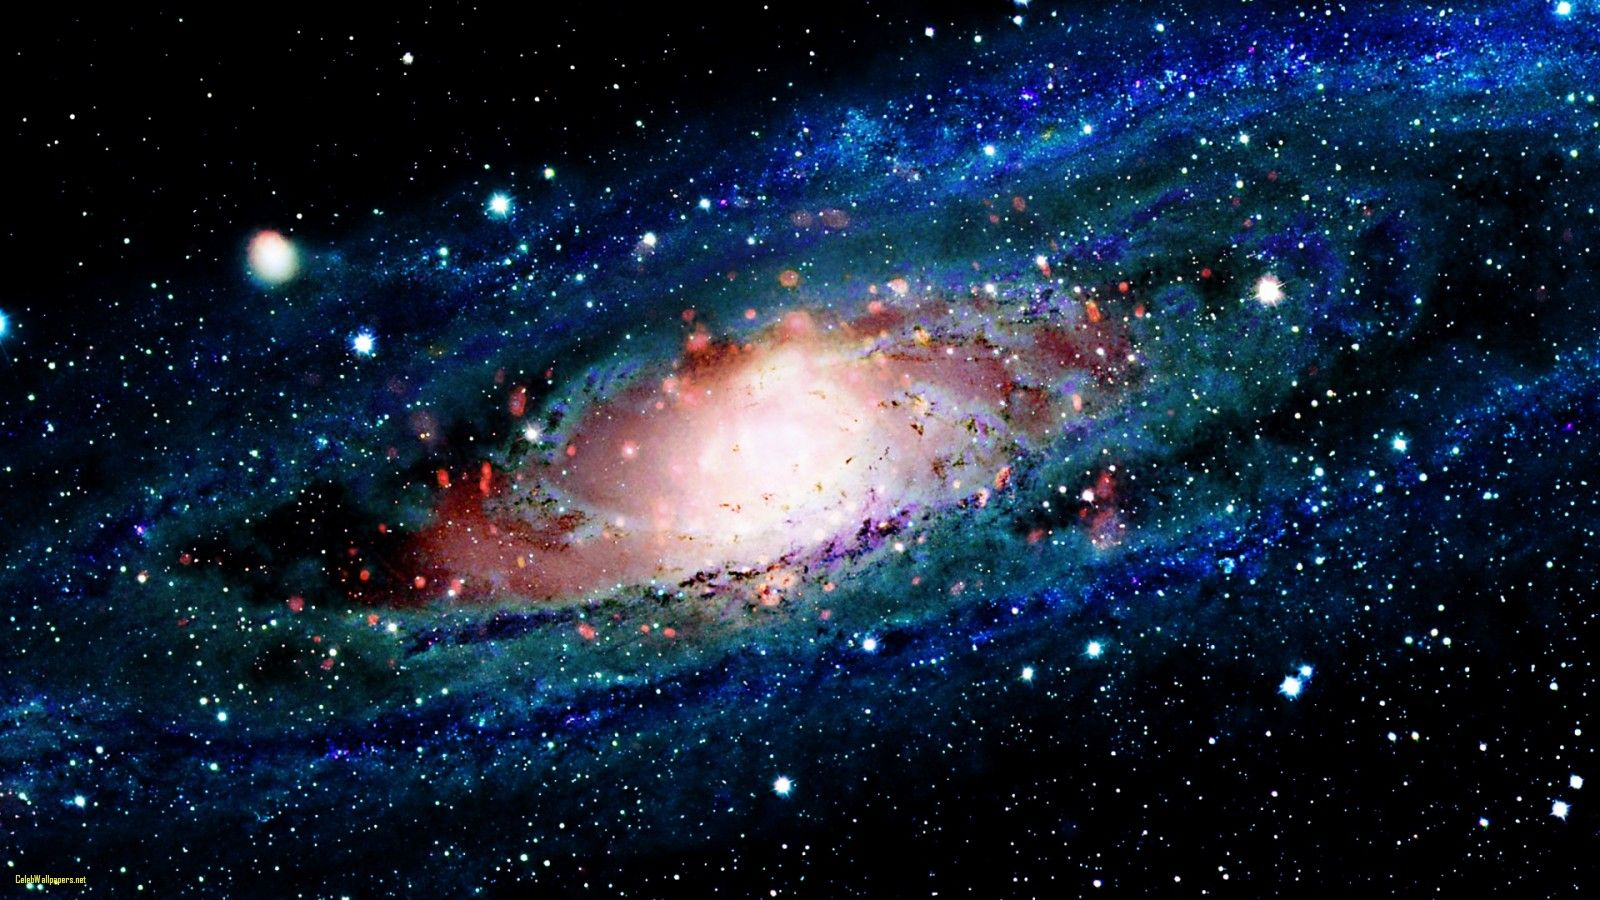 Cool galaxy wallpapers top free cool galaxy backgrounds wallpaperaccess - Cool galaxy wallpaper ...